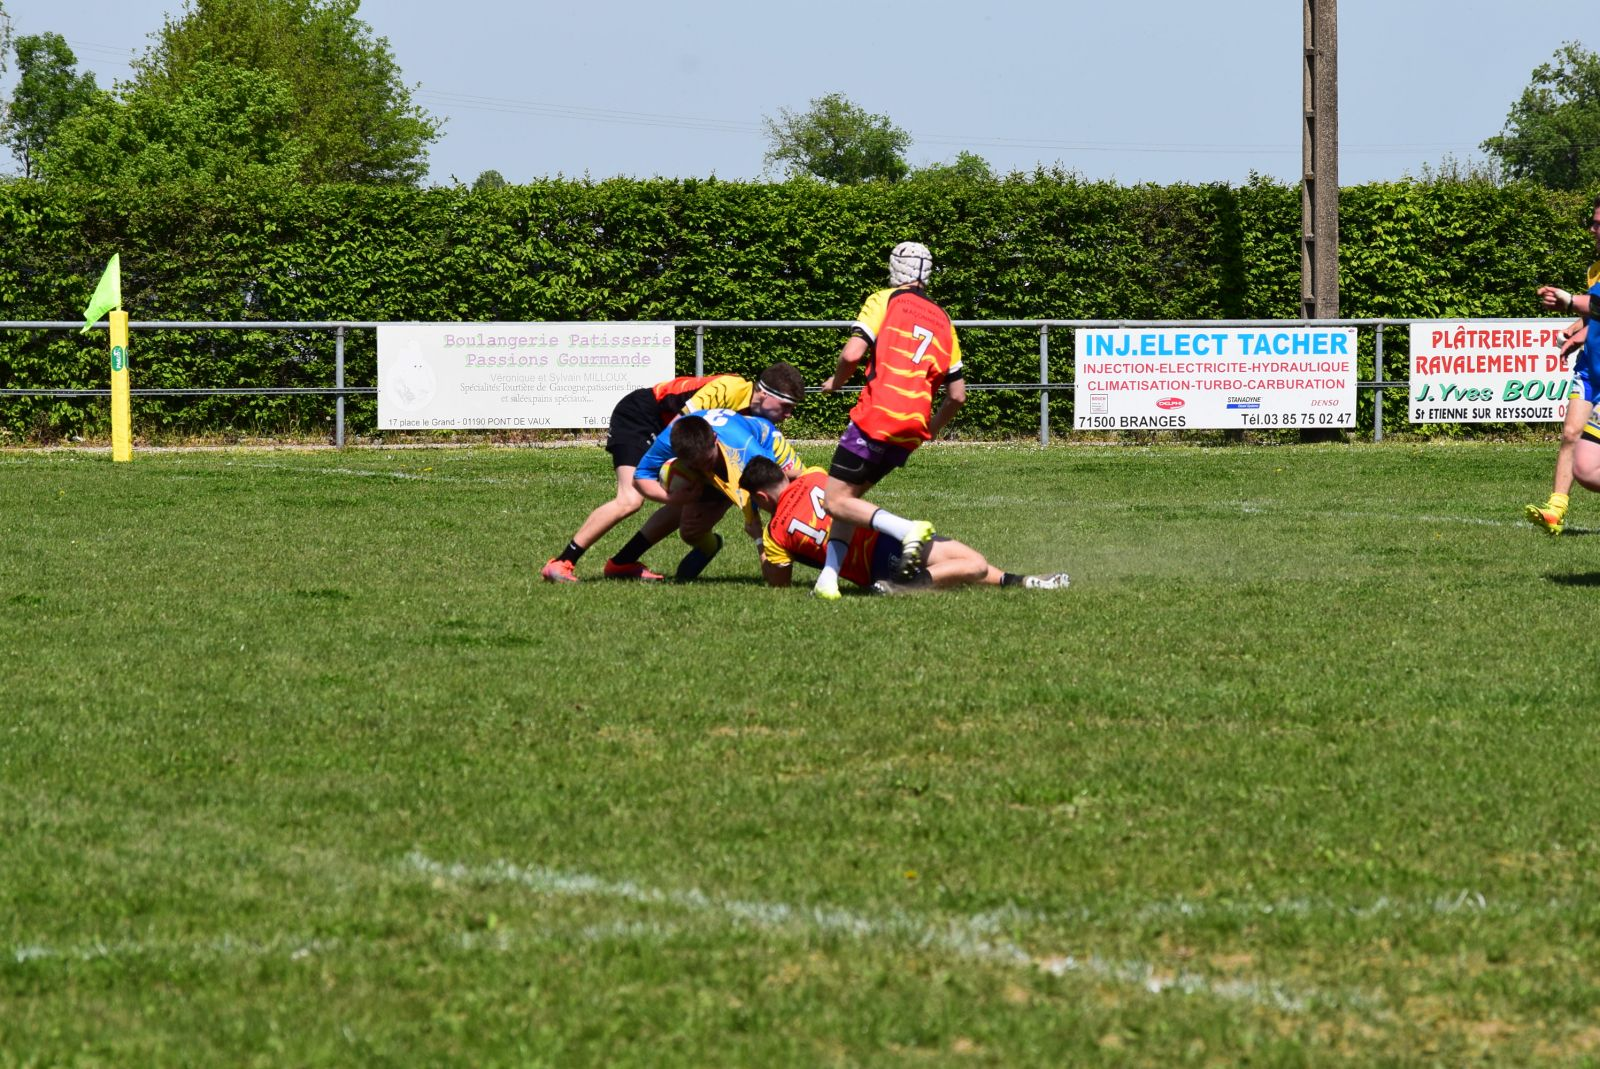 Entente Bresse Veyle Seille Vs Bourg Rugby Bassin Rchb